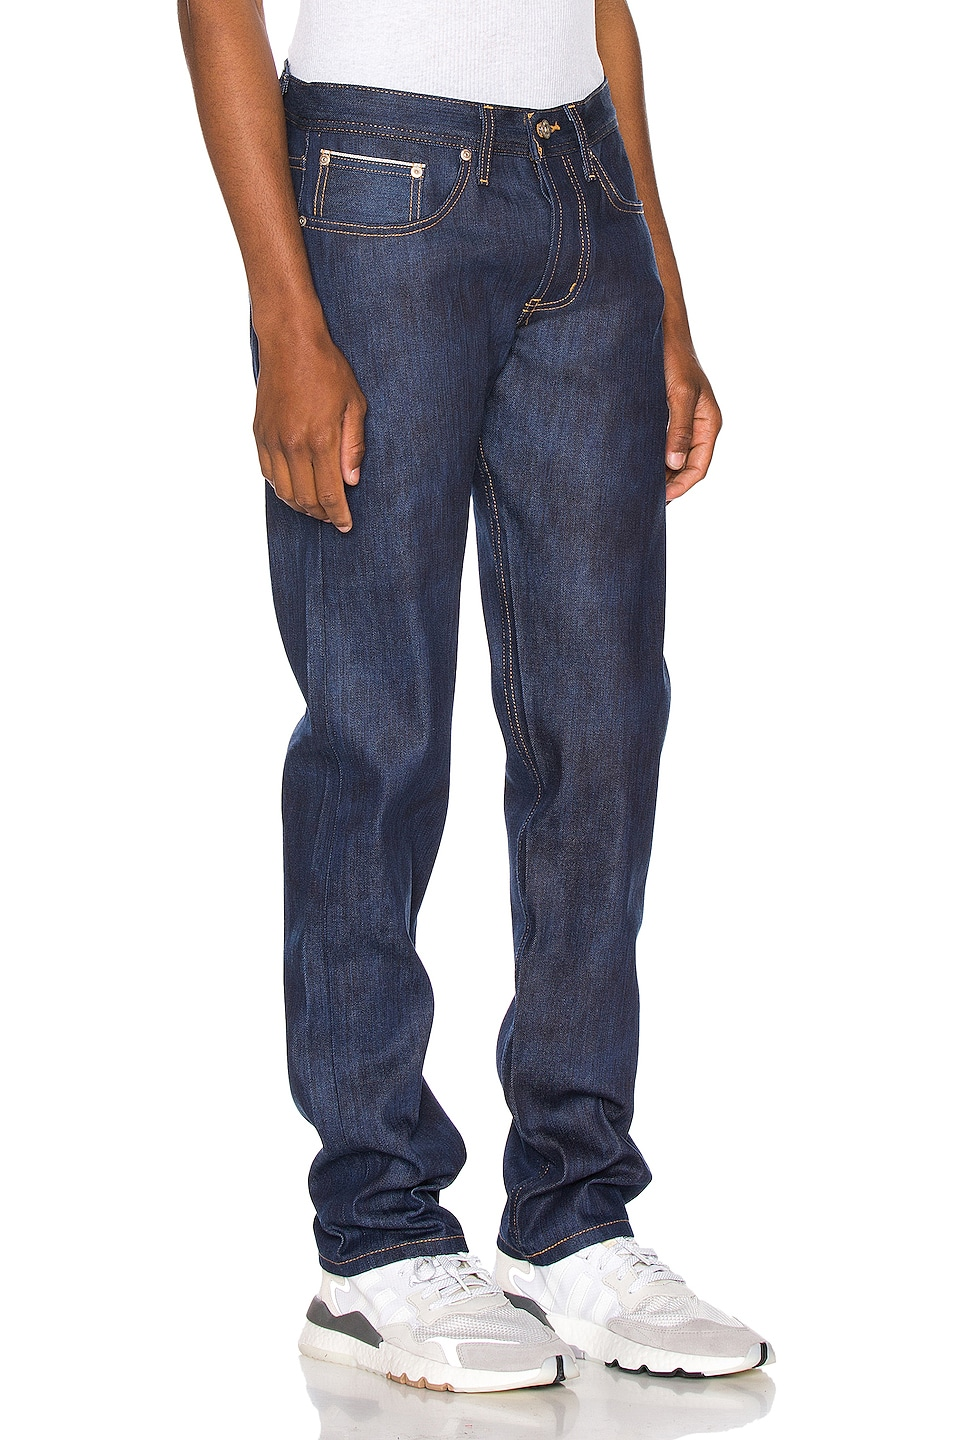 Image 2 of Naked & Famous Denim Weird Guy Jeans in Kasuri Stretch Selvedge